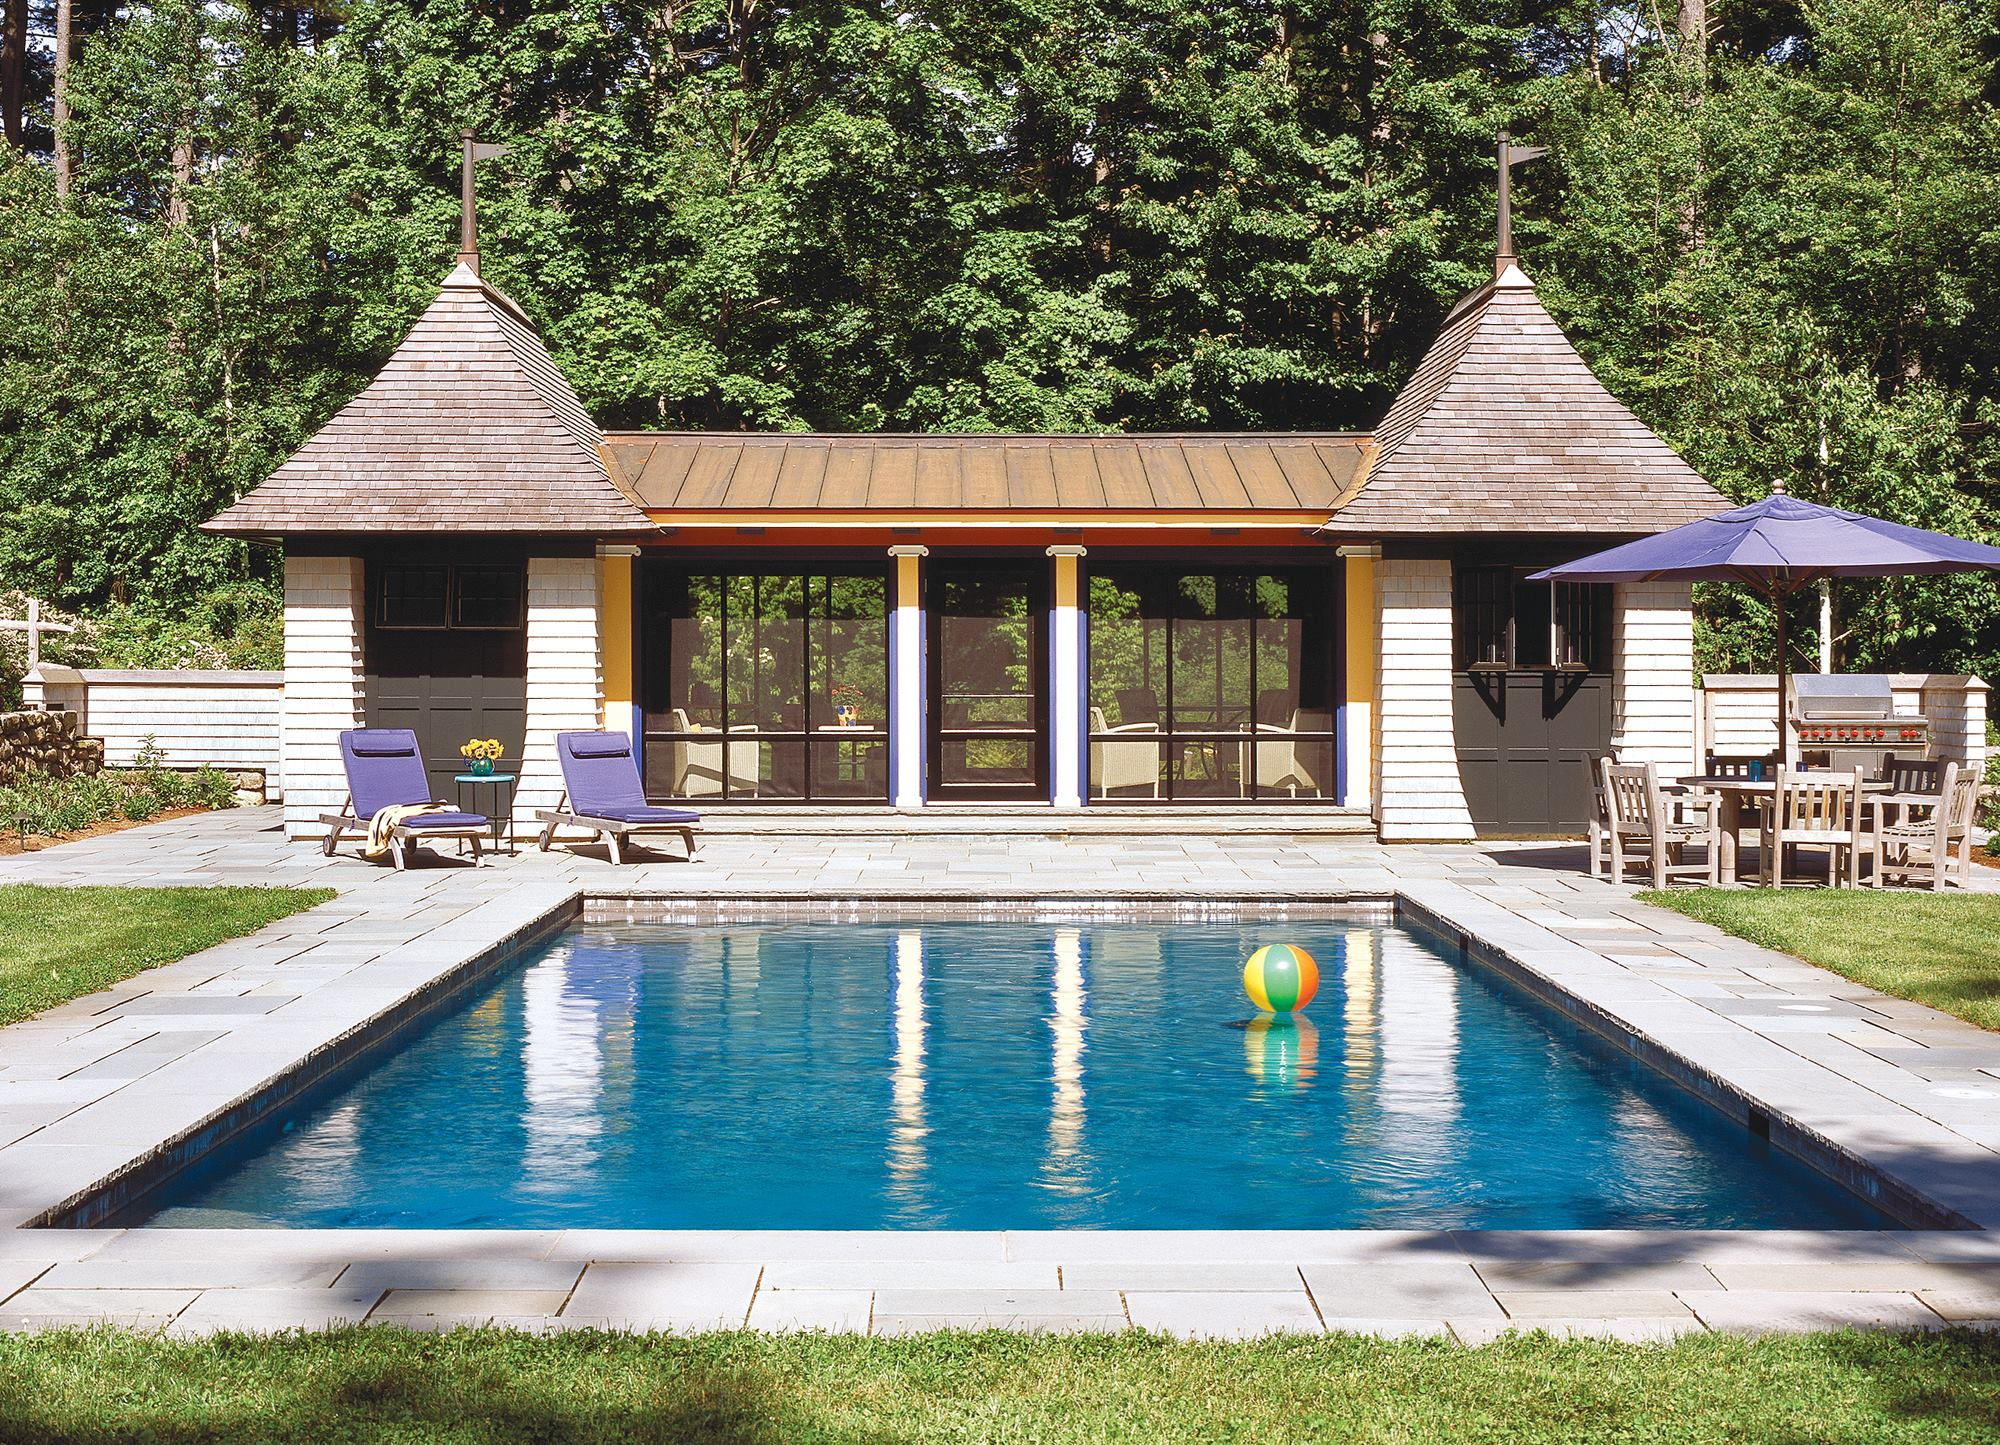 Pool houses custom home magazine design vacation for Home plans with pools